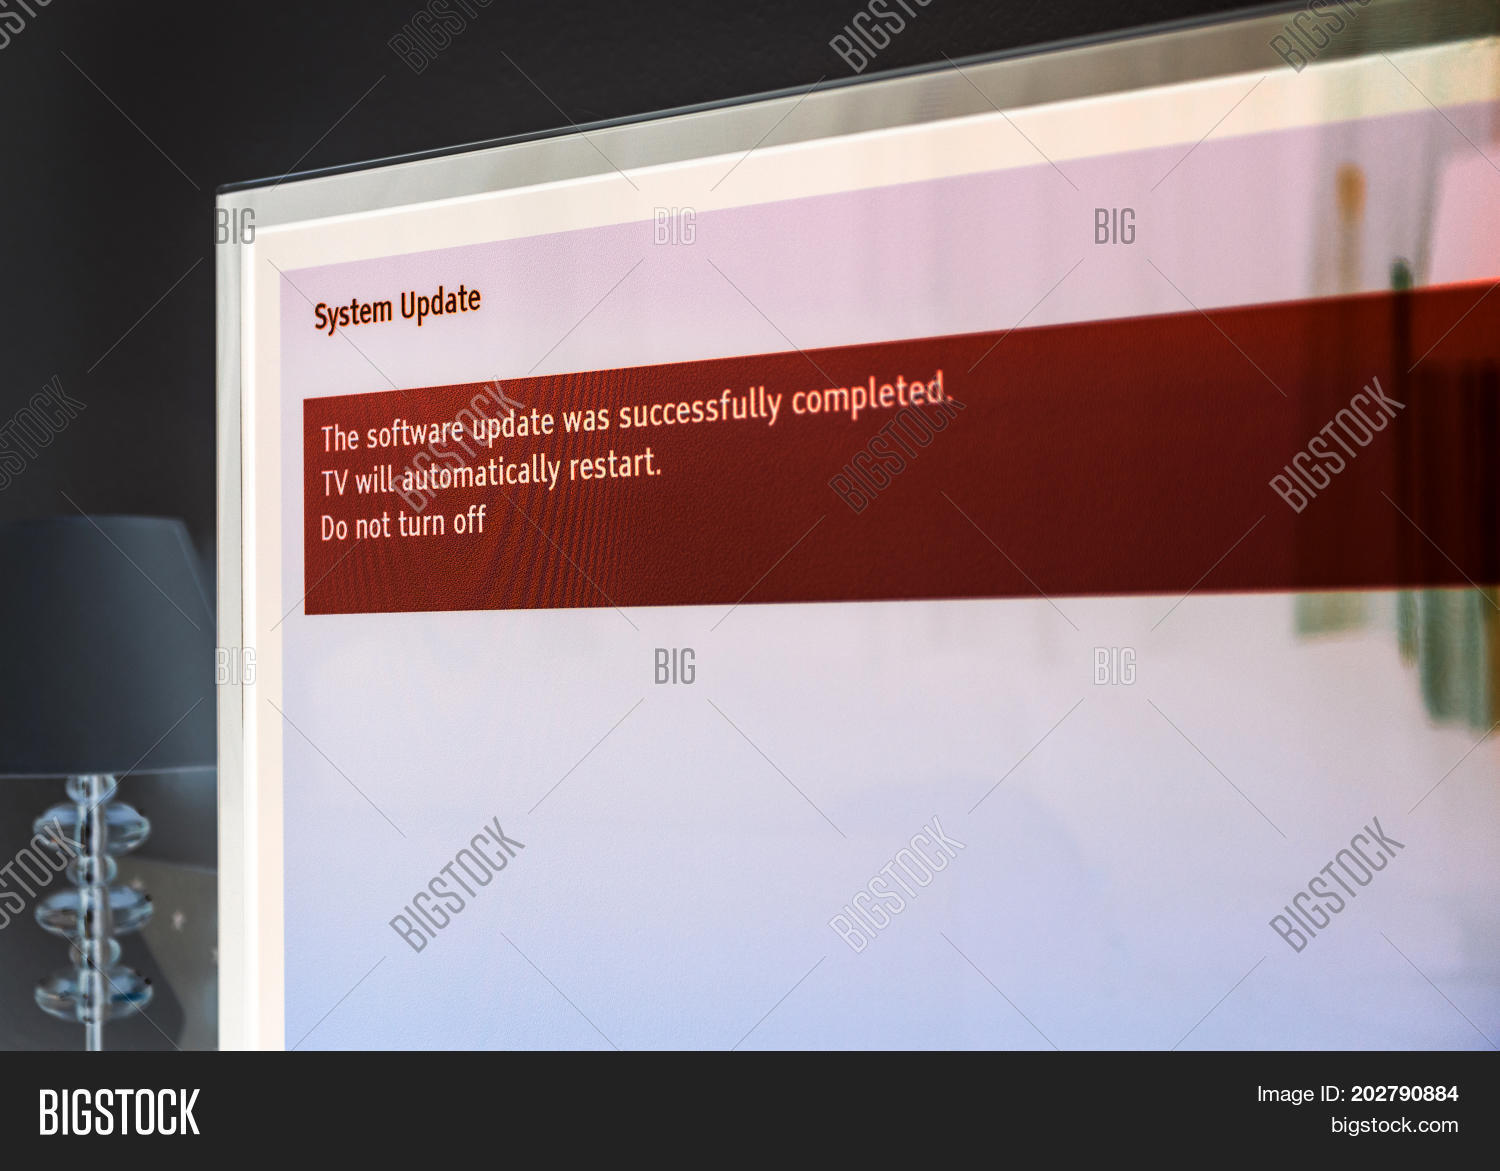 Message On Tv Screen Image & Photo (Free Trial) | Bigstock